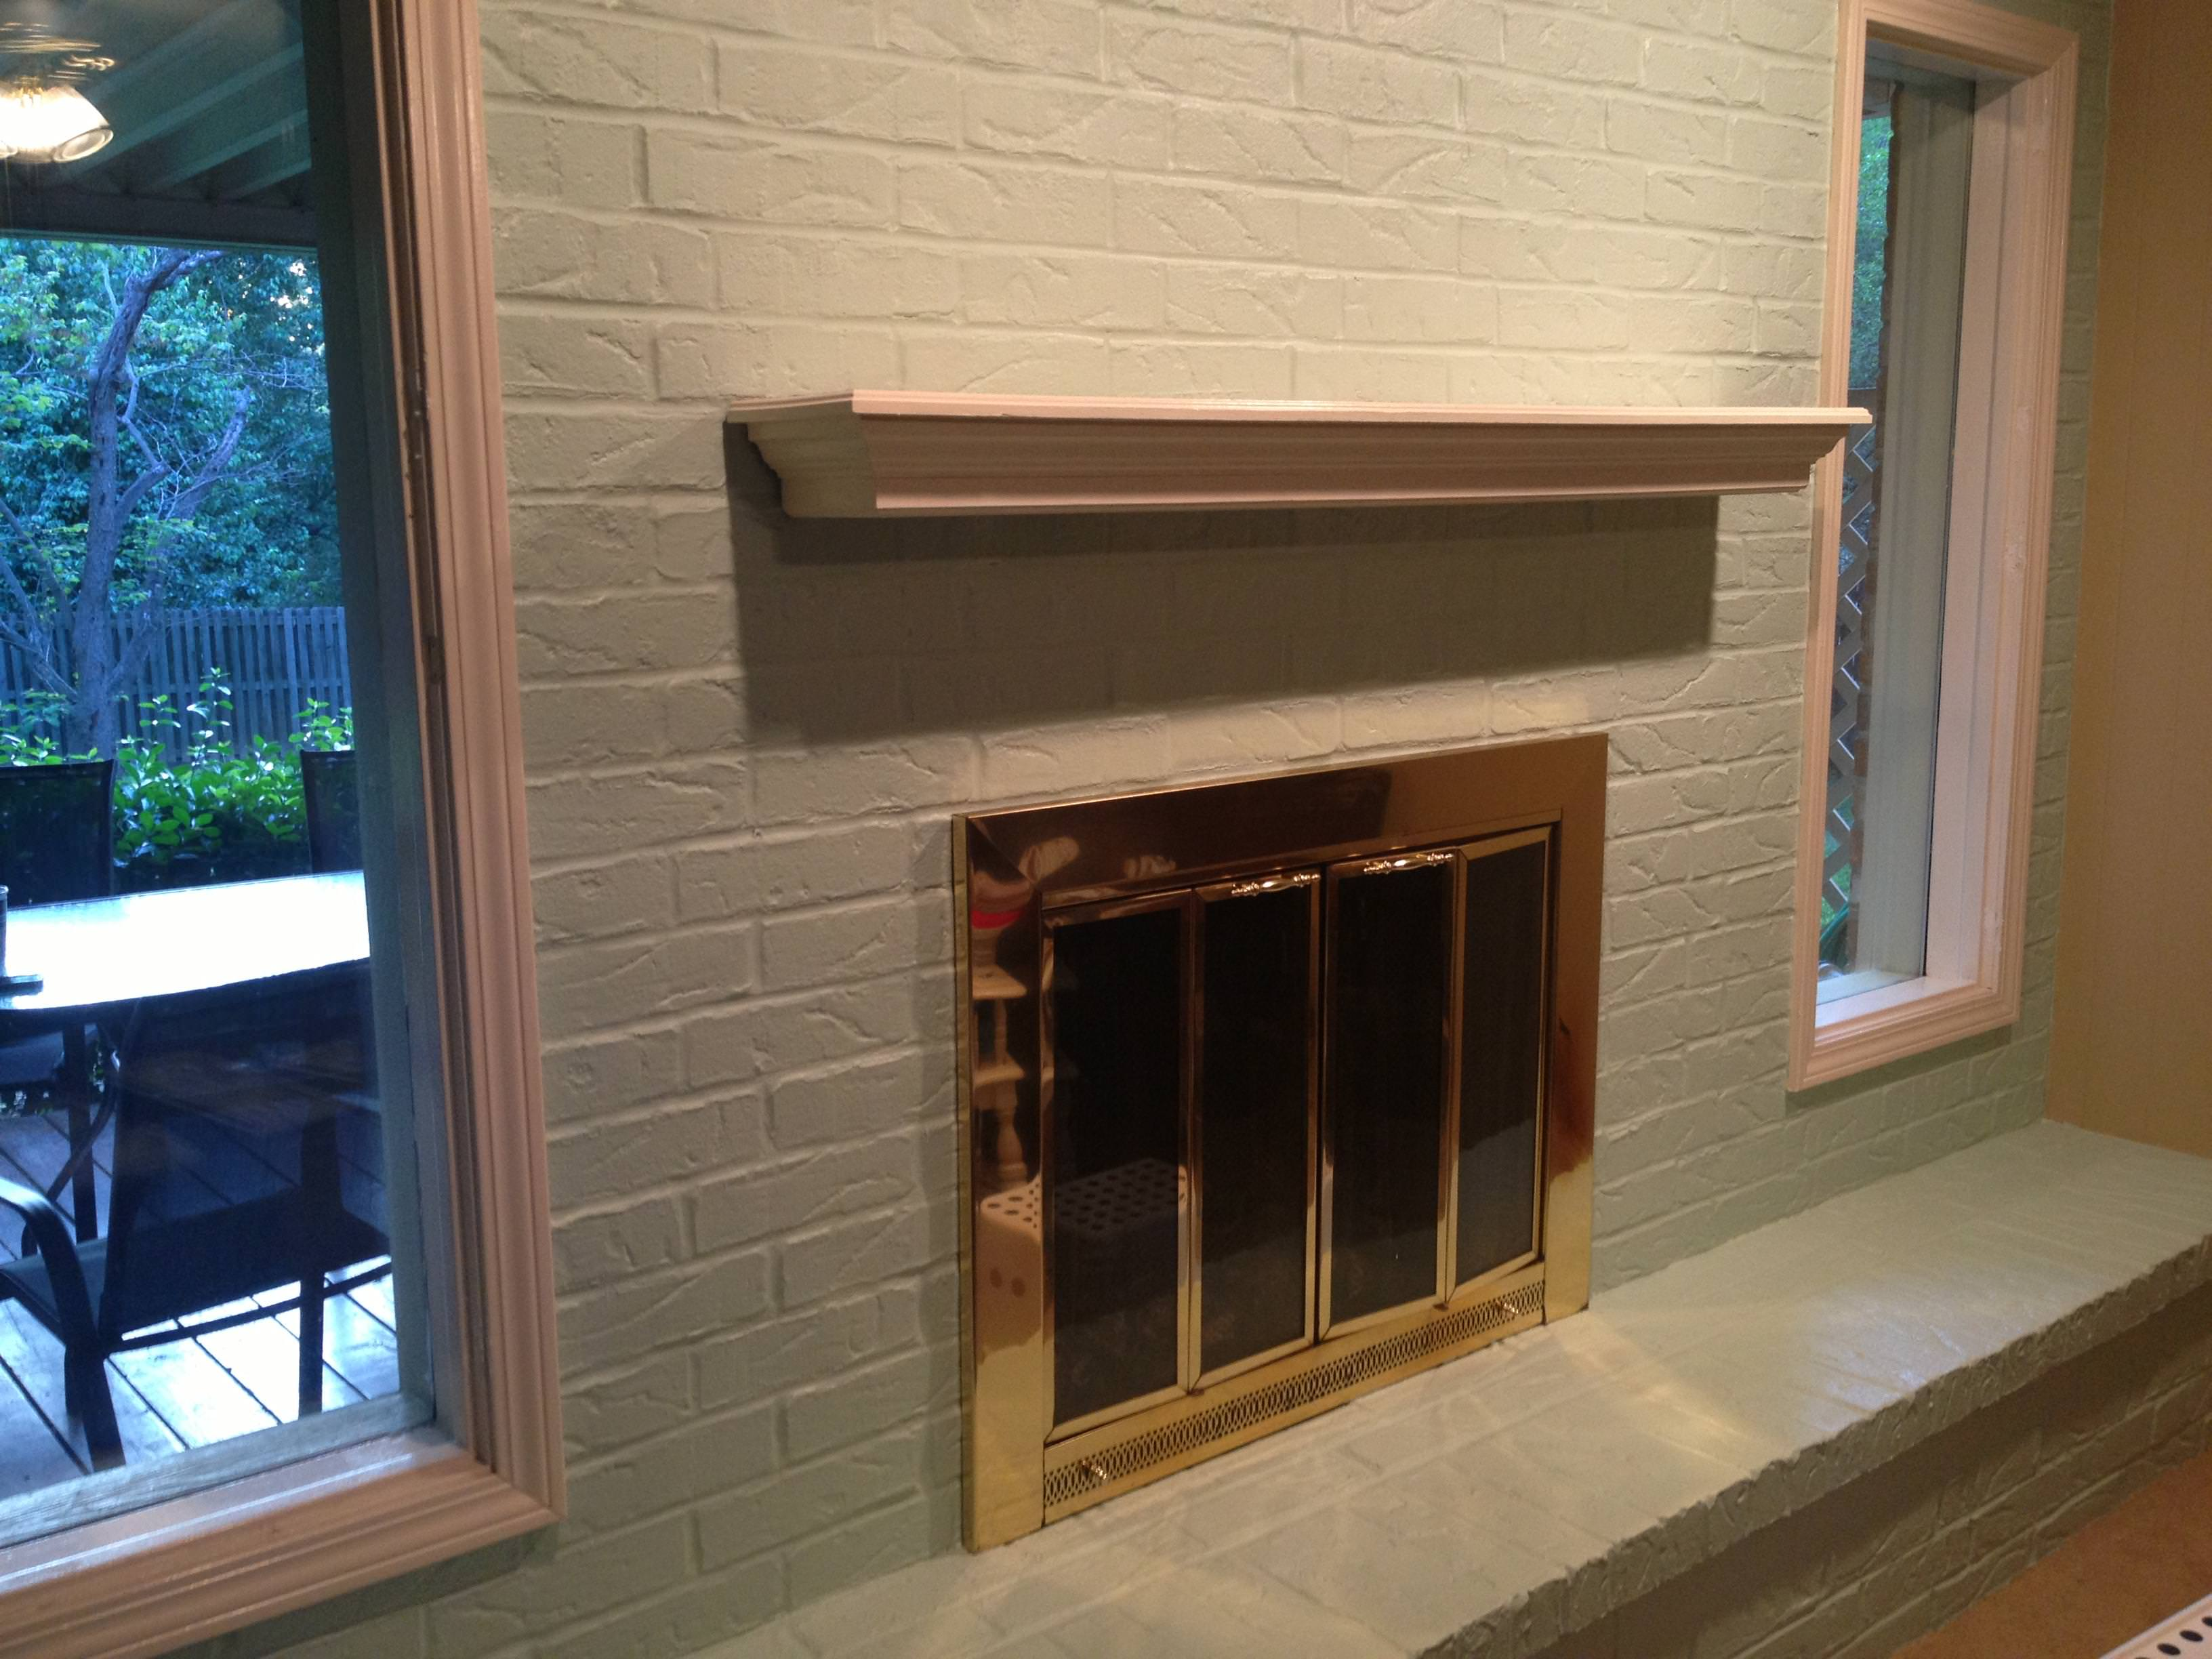 Lowes Fireplace Mantel | Faux Fireplace Mantel Kits | Cheap Fireplace Mantels